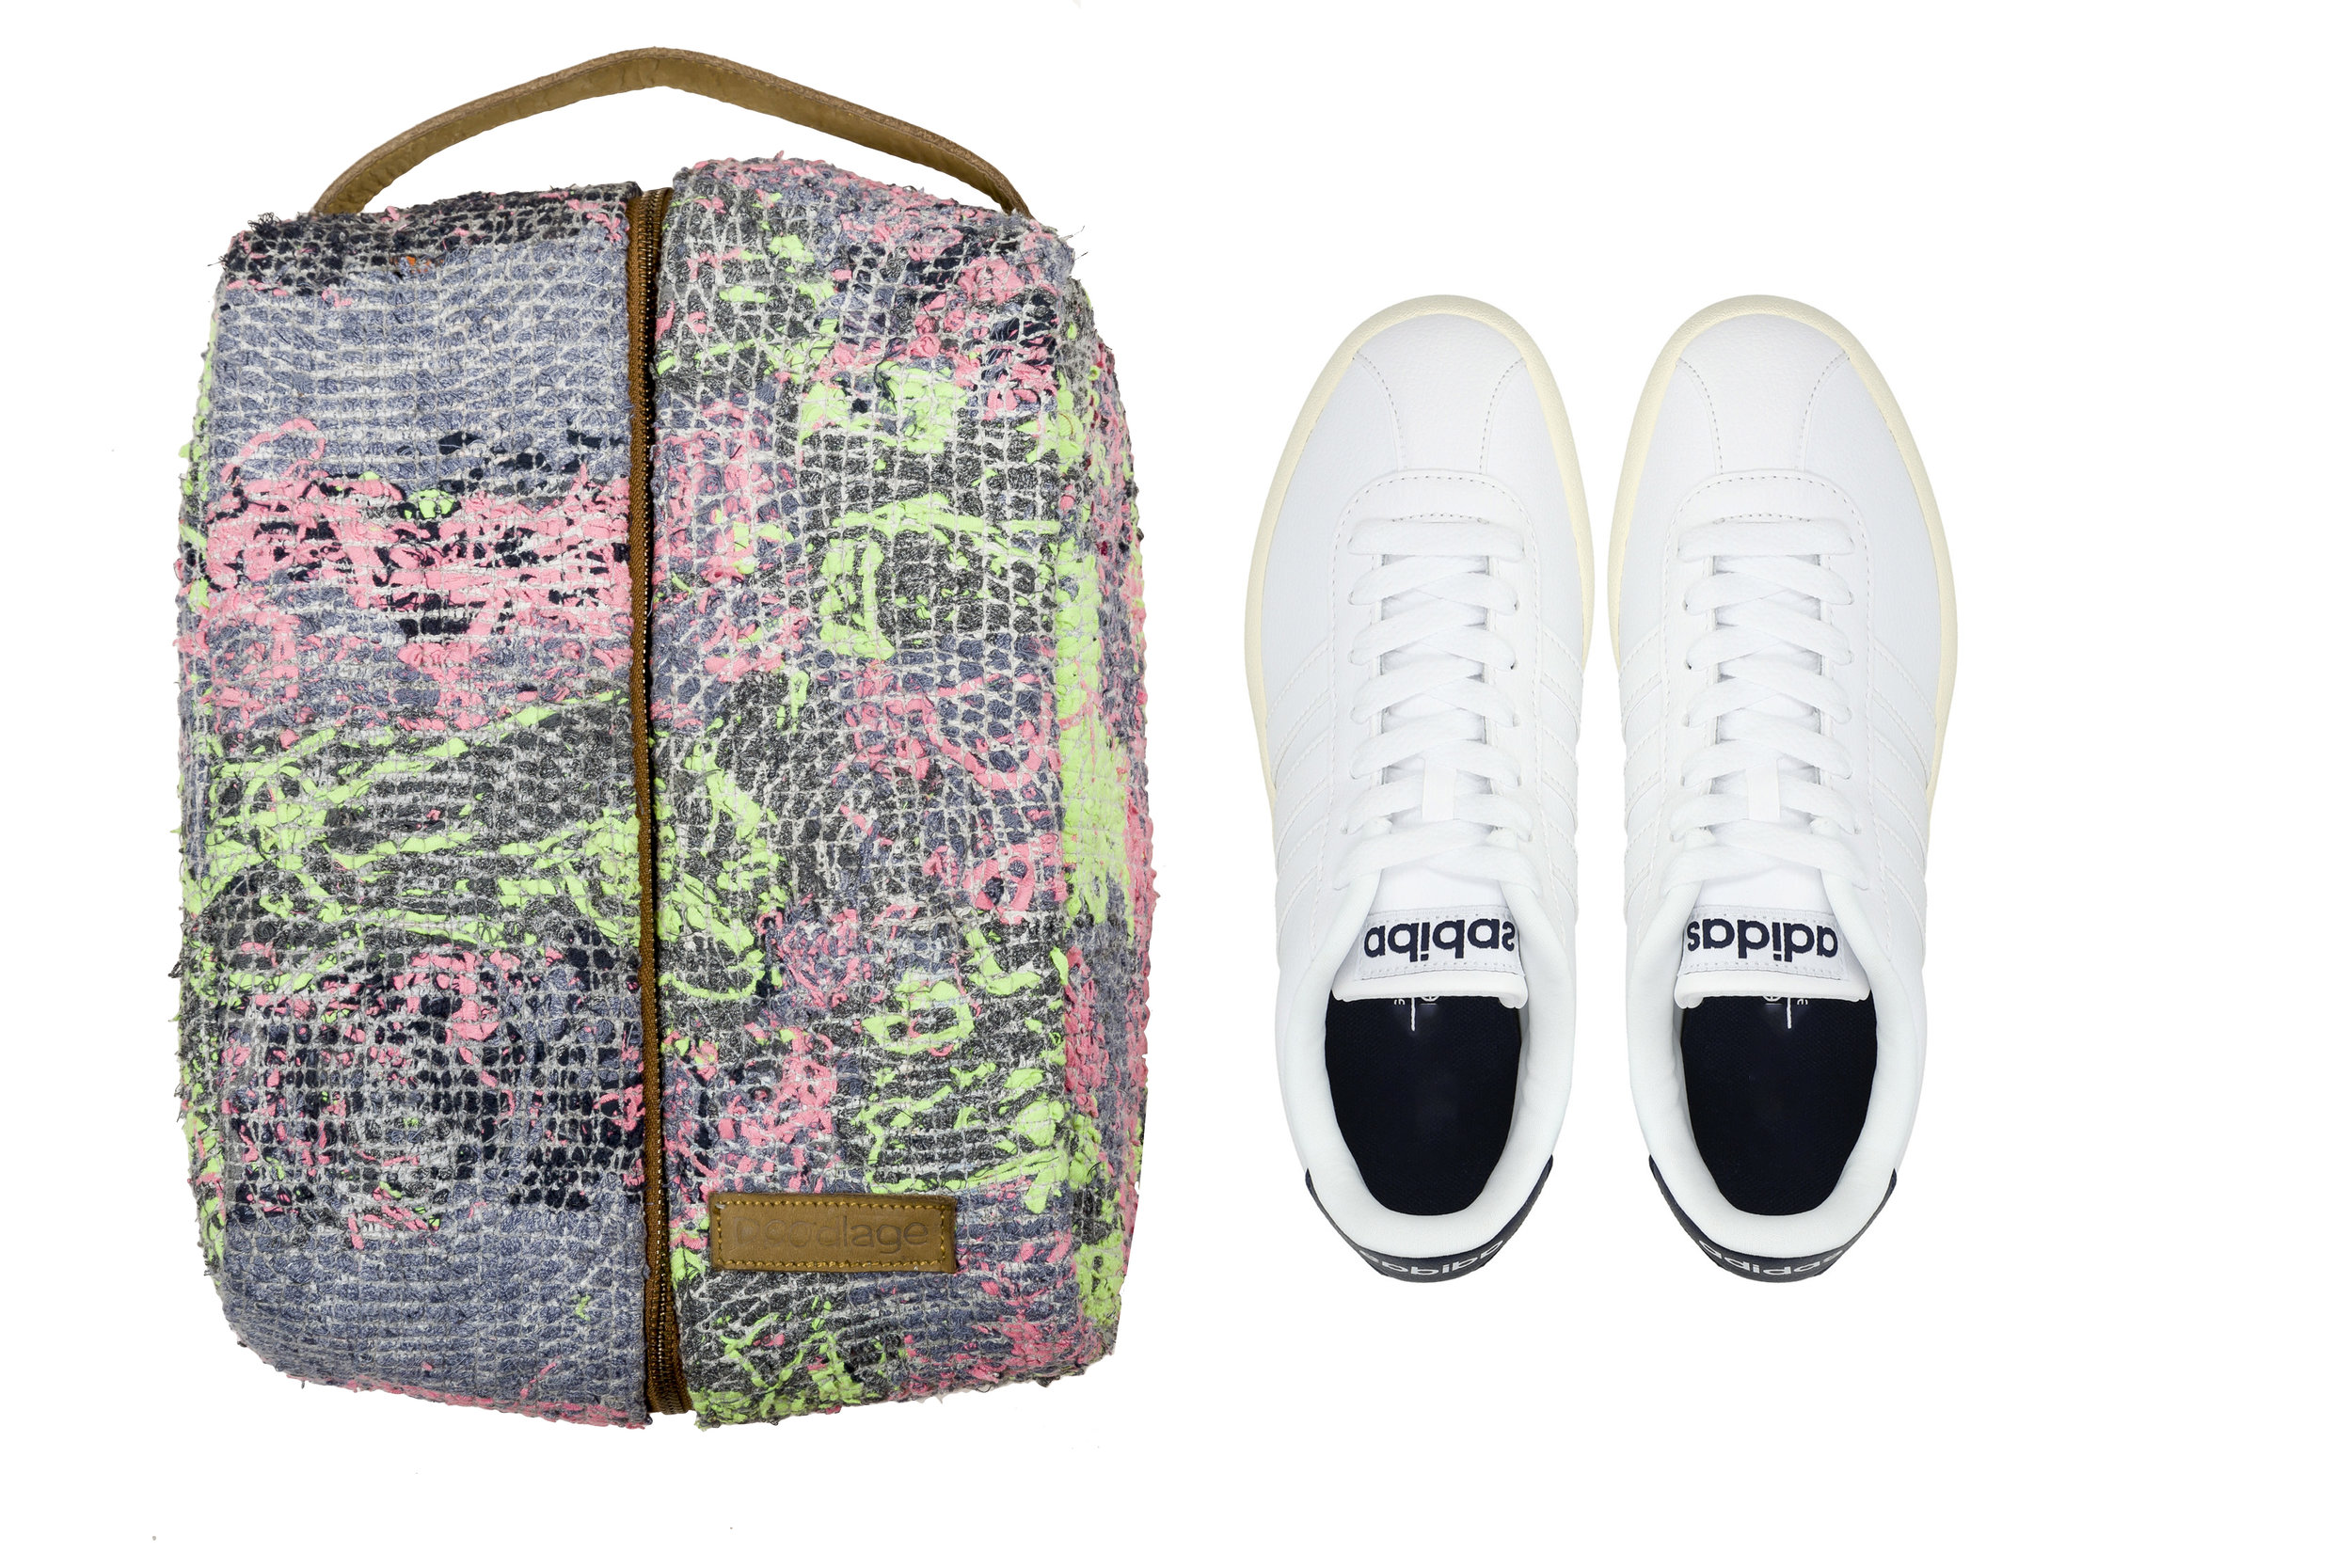 The smallest of fabric scraps at  Doodlage a re transformed into woven, patched accessories like these– Shoe covers from  Doodlage's  new accessories collection.